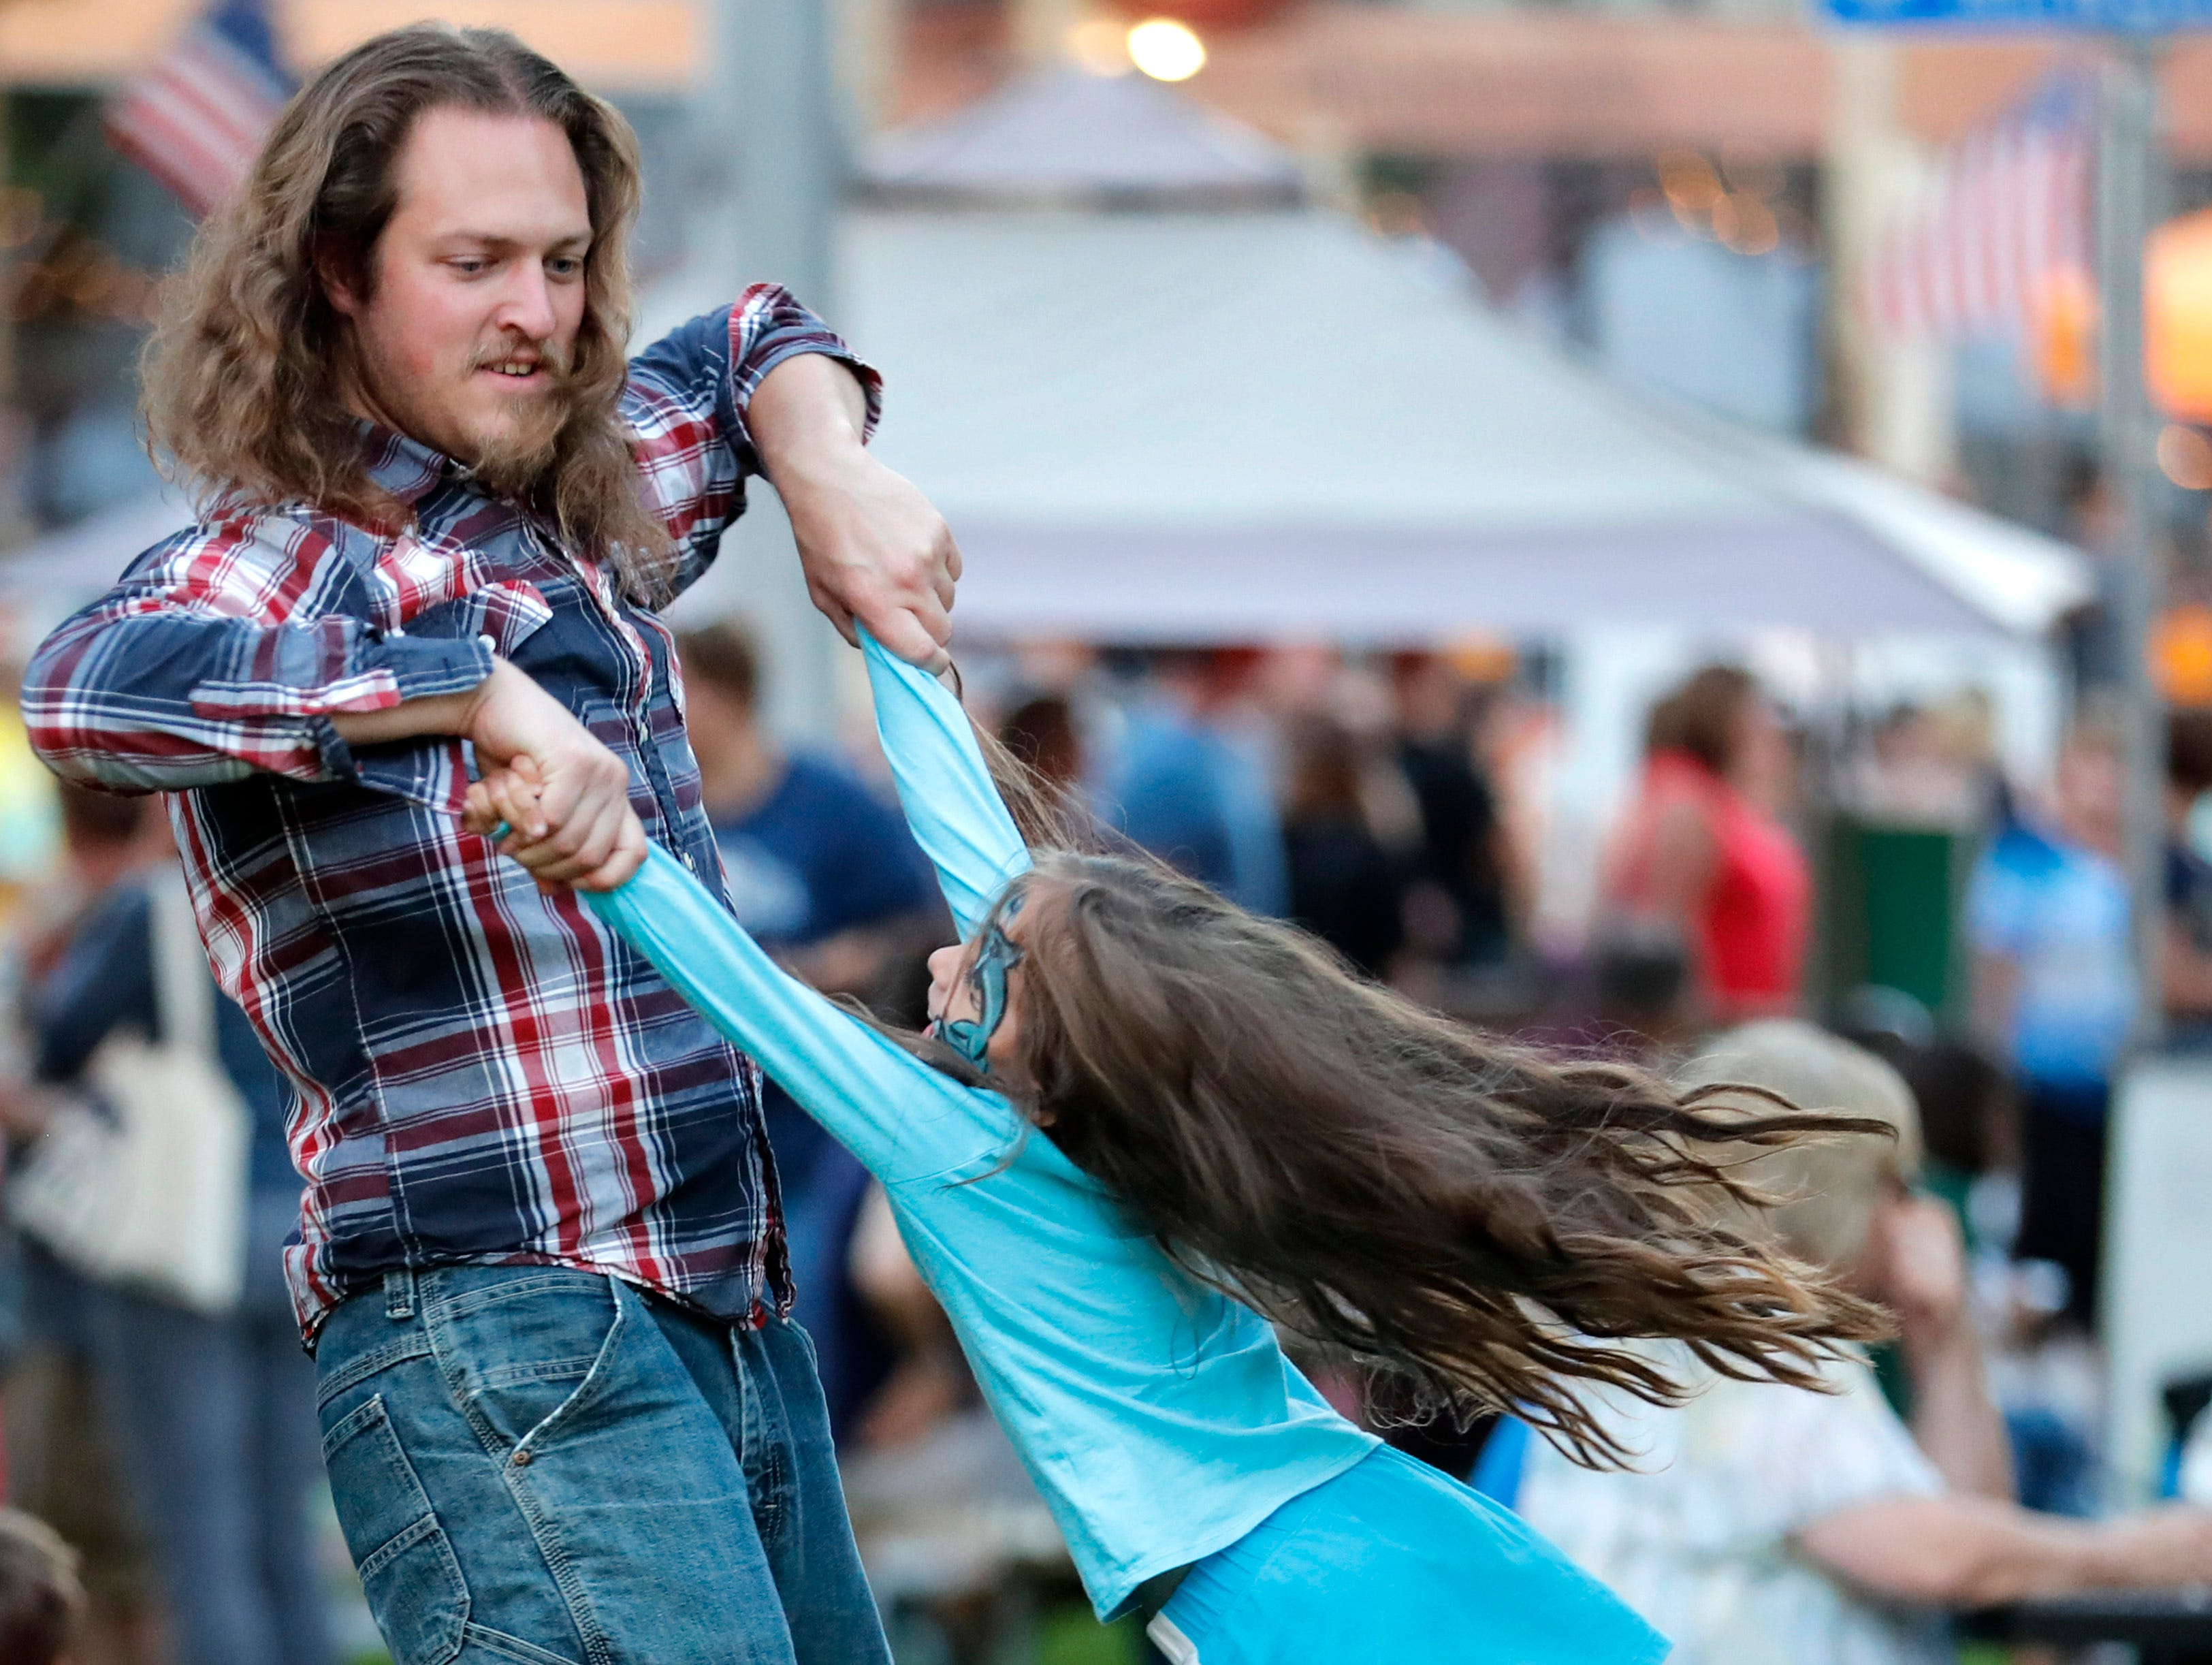 David Mclean, of Neenah, spins Madelyn Hess, 6, while dancing during Bazaar After Dark Wednesday, Sept. 12, 2018, in Menasha, Wis.Danny Damiani/USA TODAY NETWORK-Wisconsin